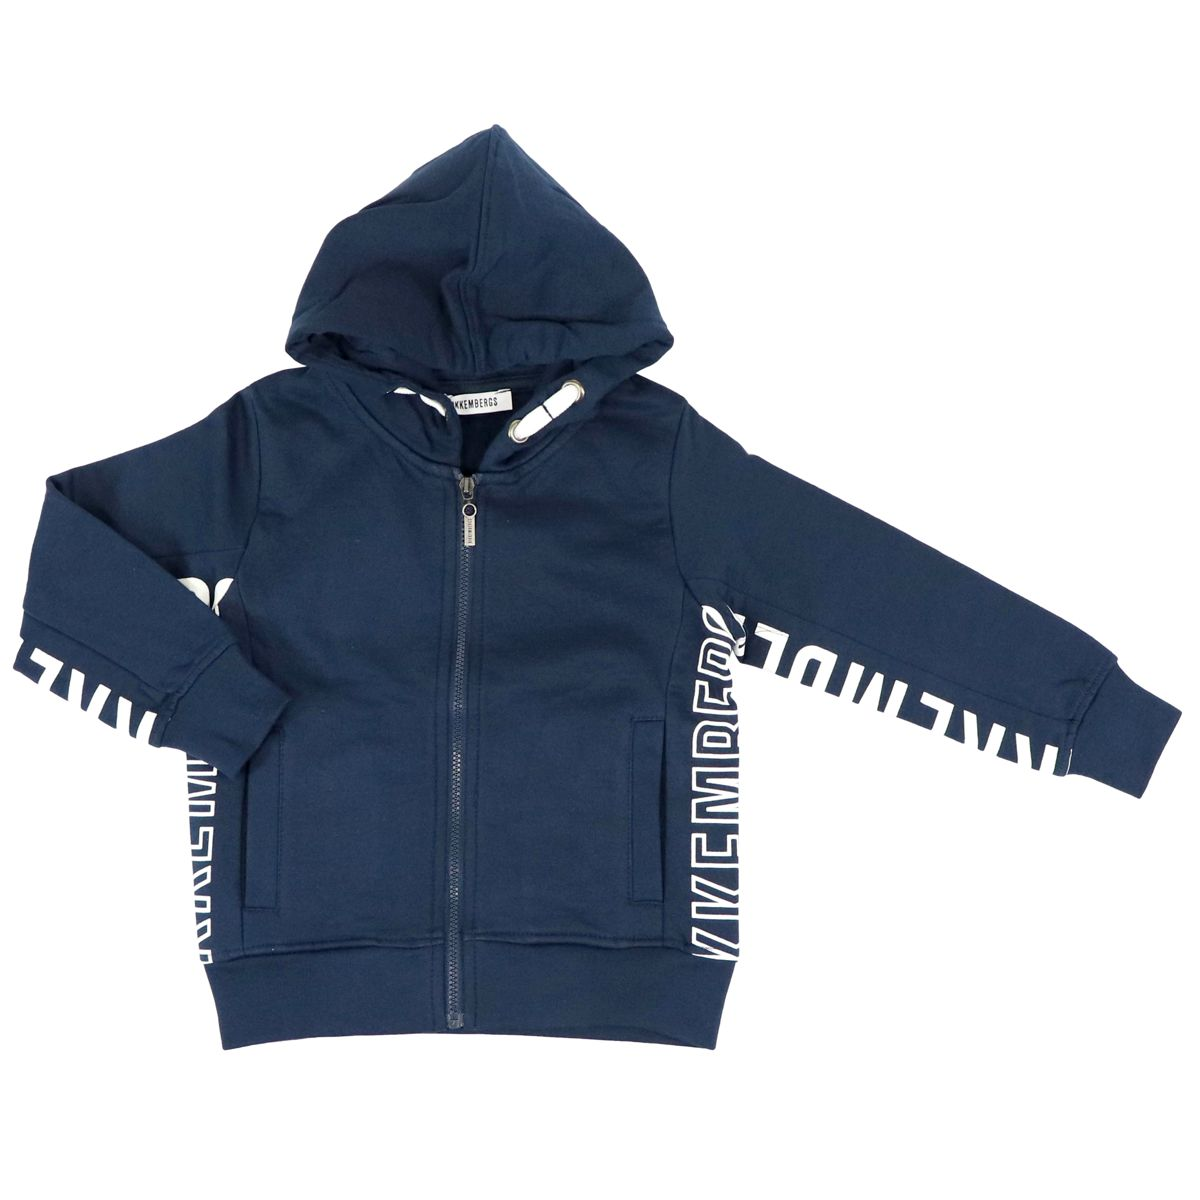 Cotton sweatshirt with hood and side logo print Blue Bikkembergs